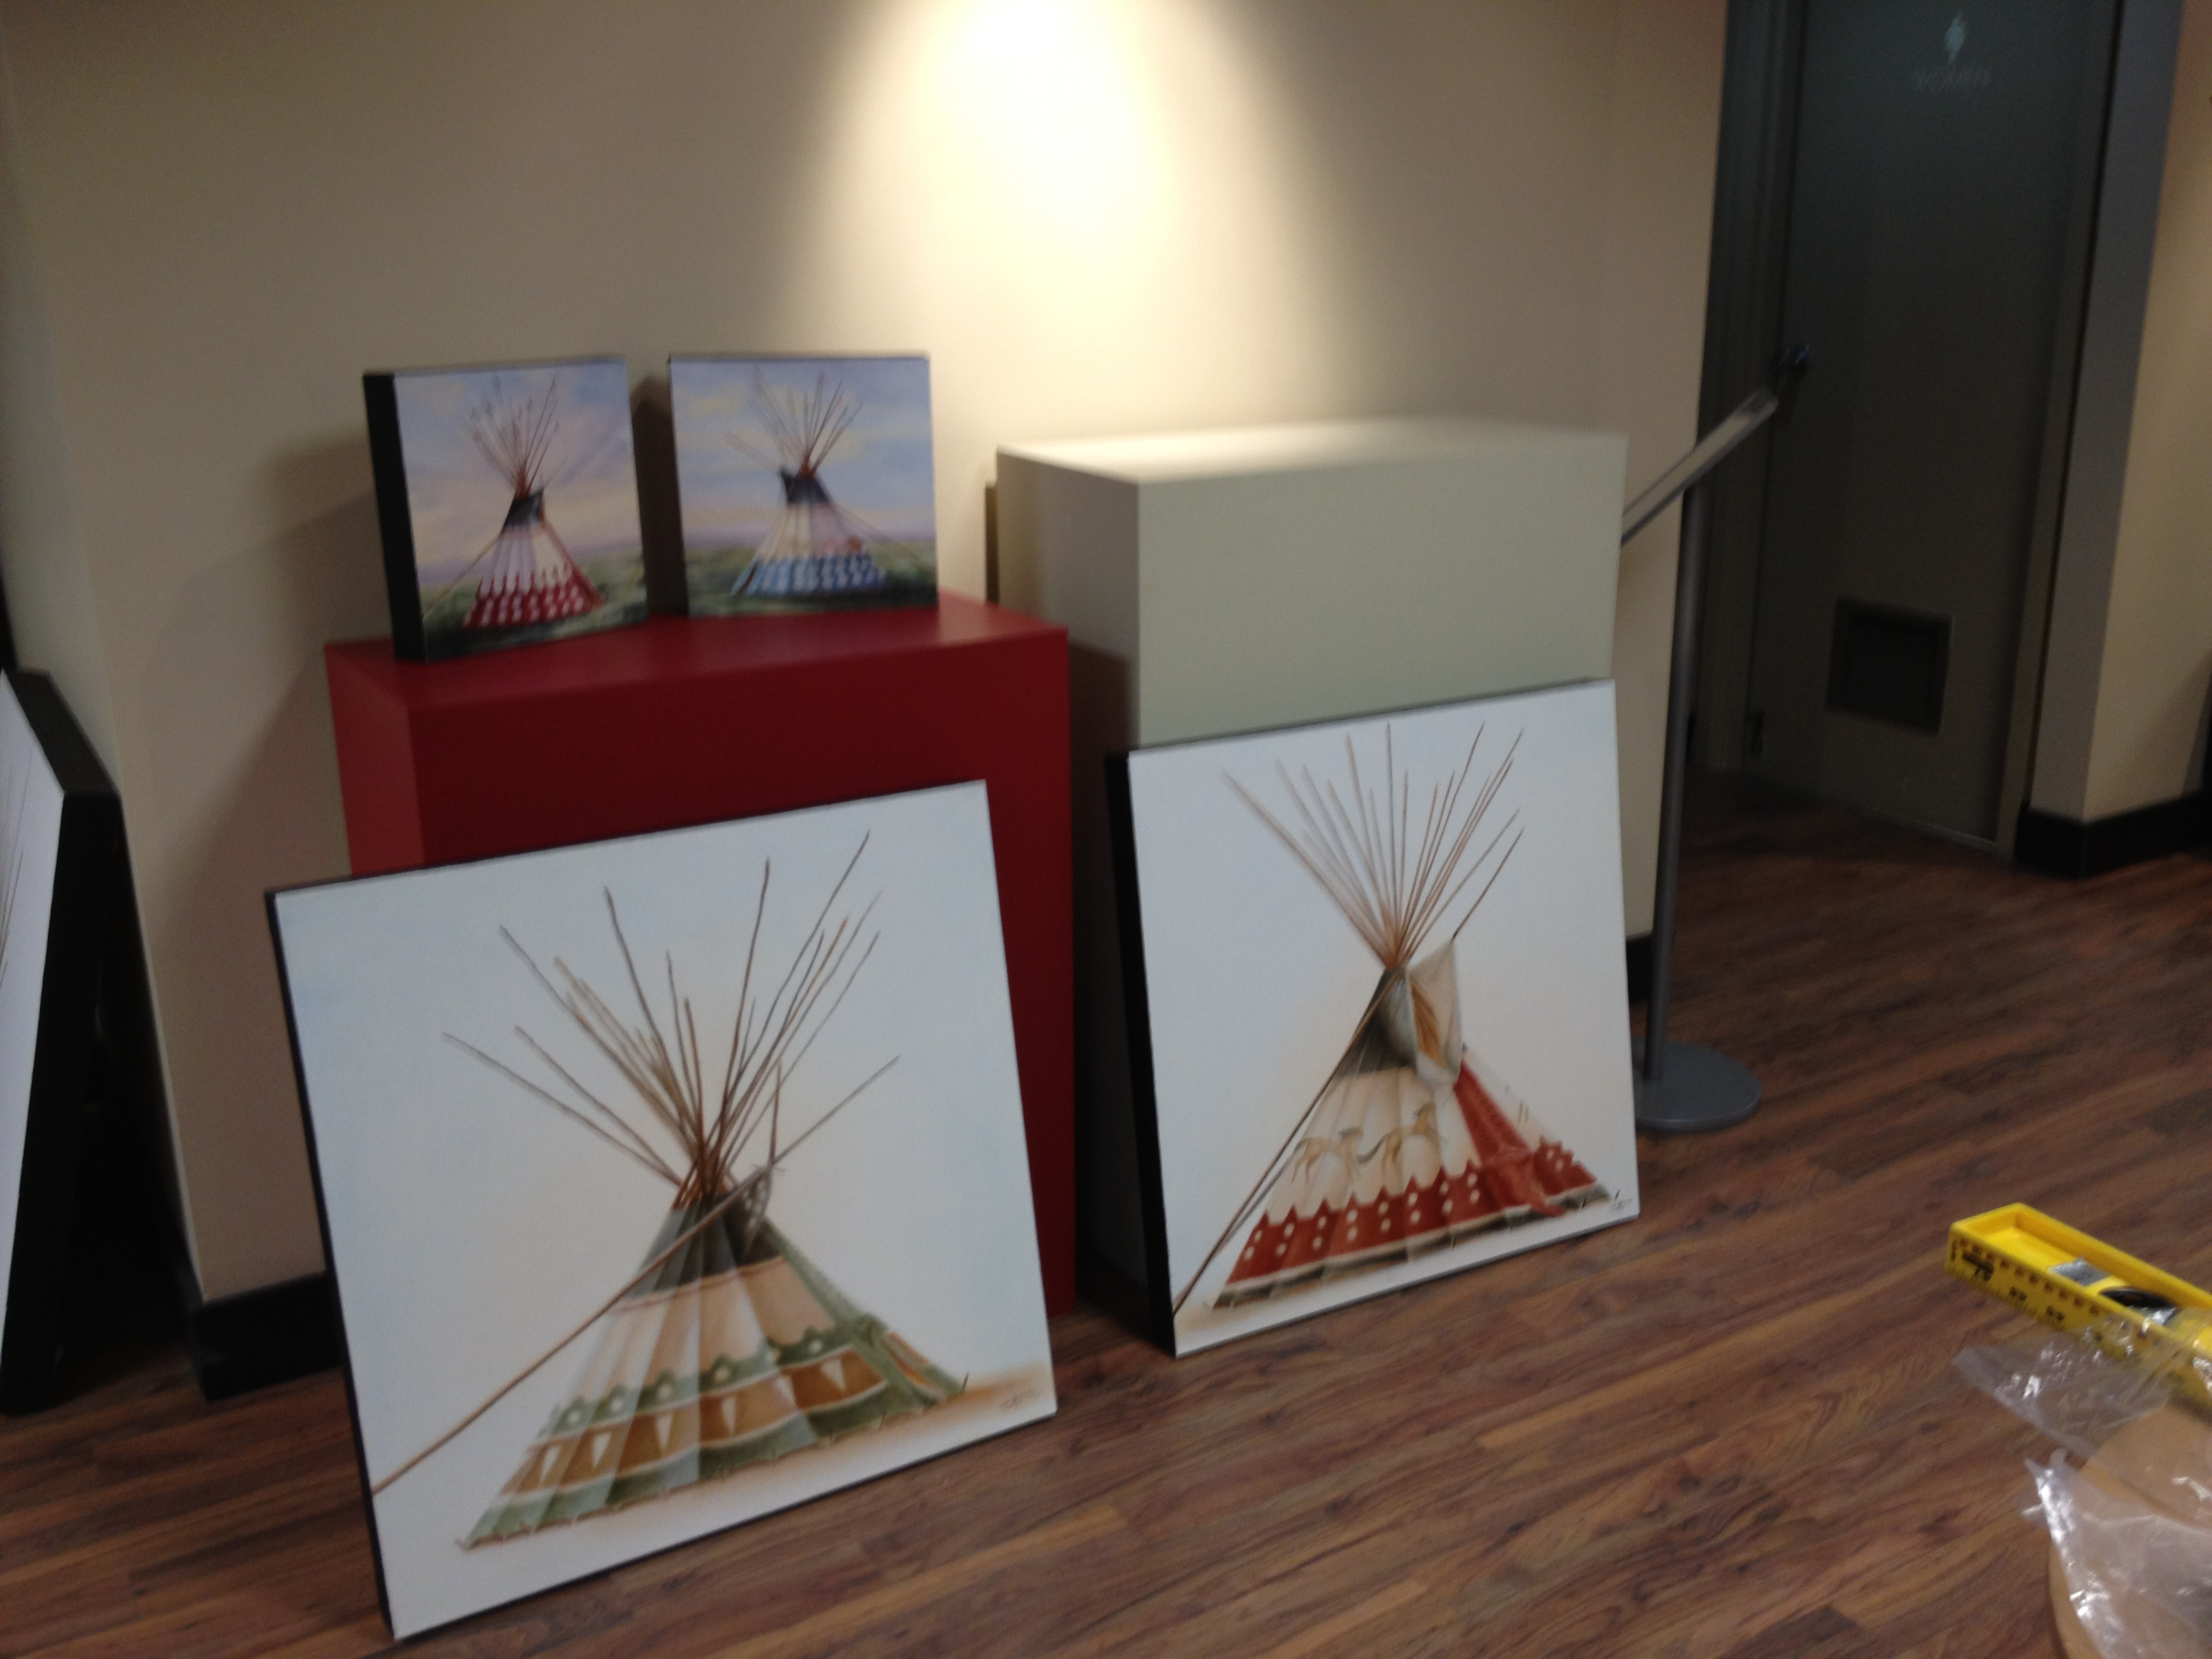 Works waiting to be hung at the Okotoks Art Gallery, Janice Tanton - CAMP exhibition